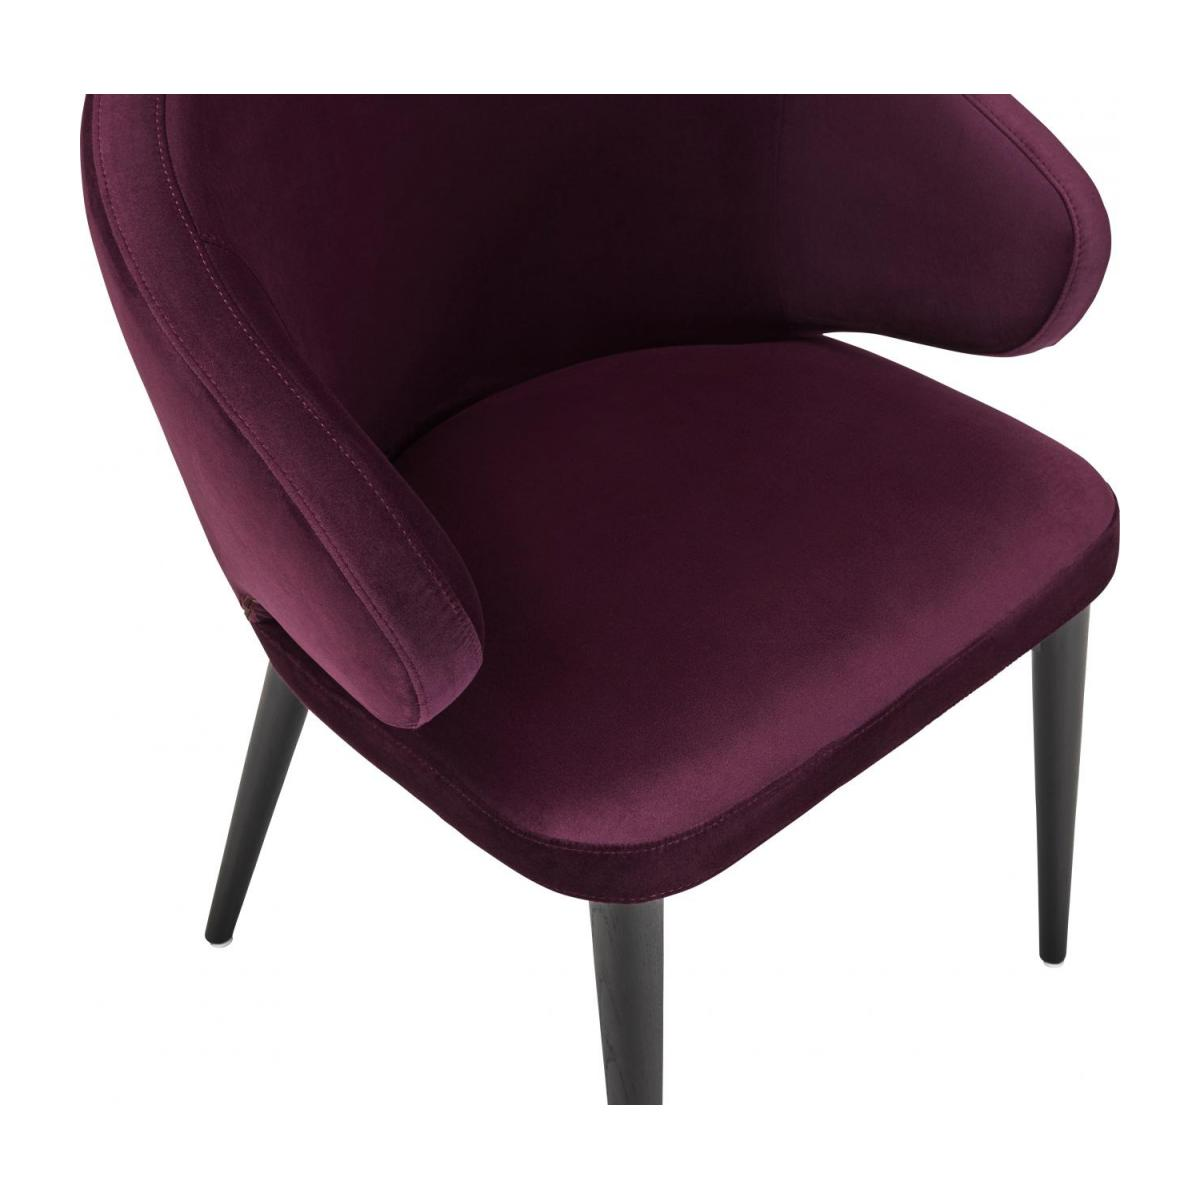 Chaise en velours - Bordeaux n°5